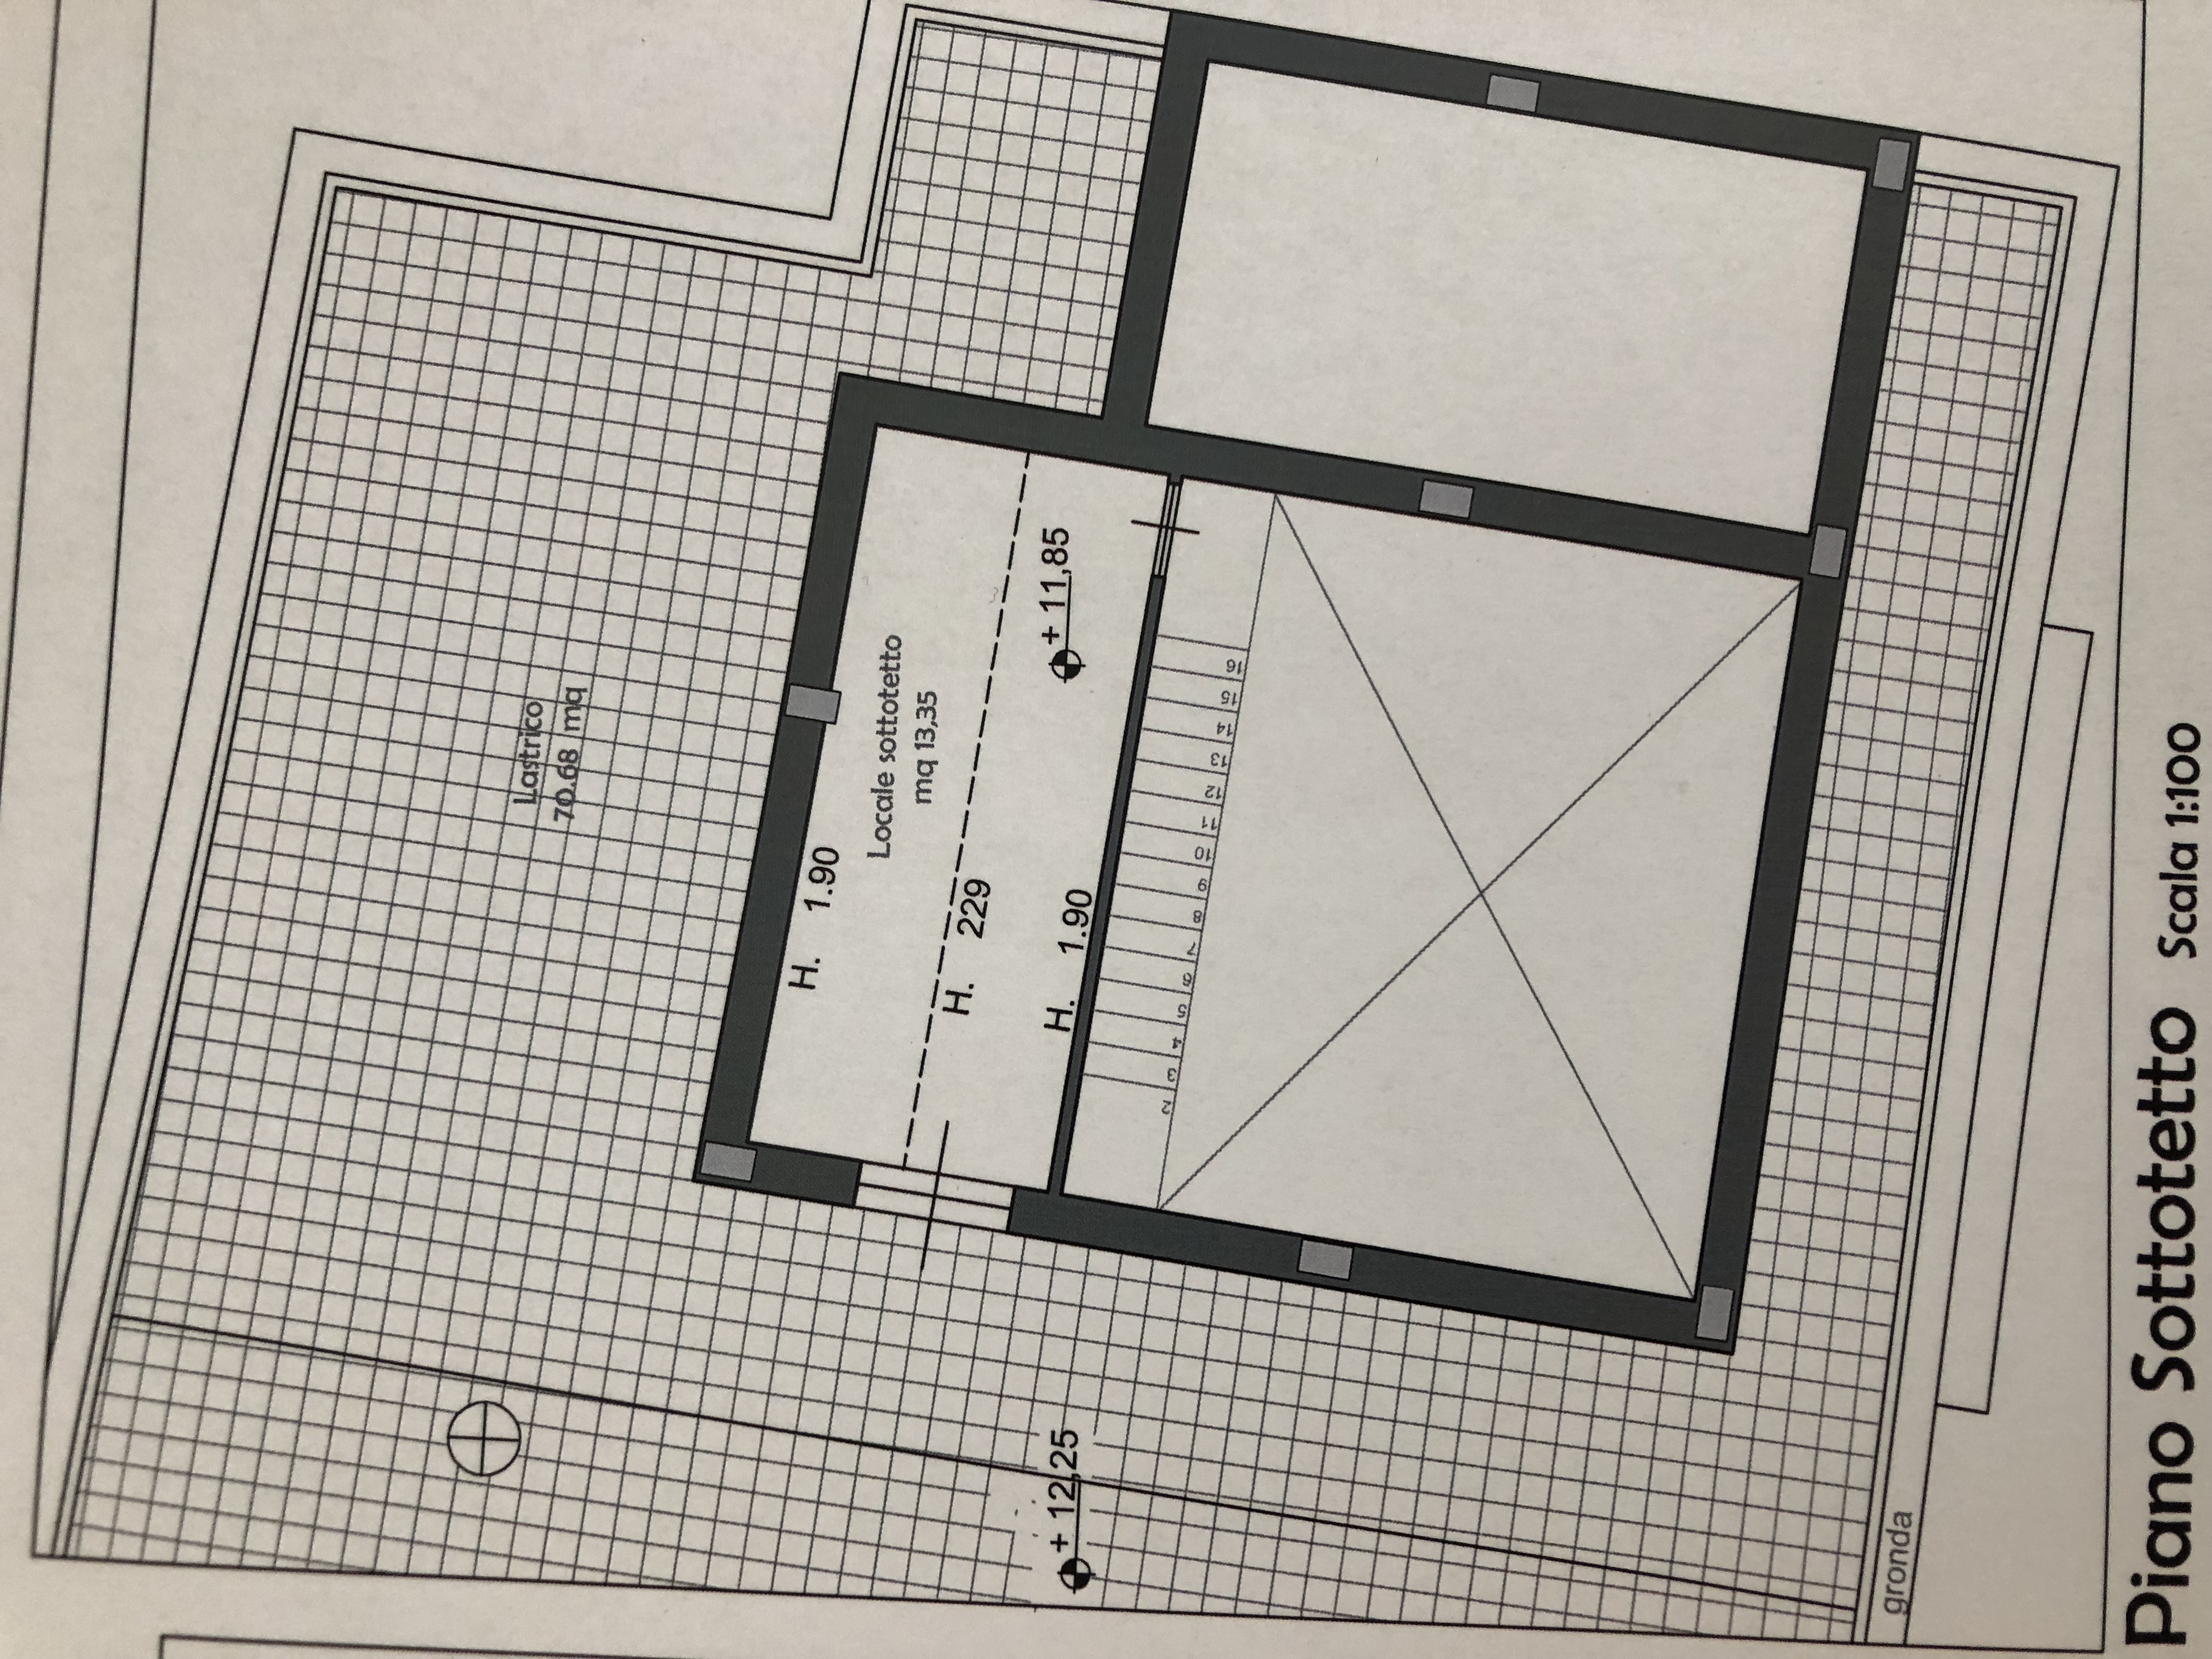 Plan 2/2 for ref. F/0182